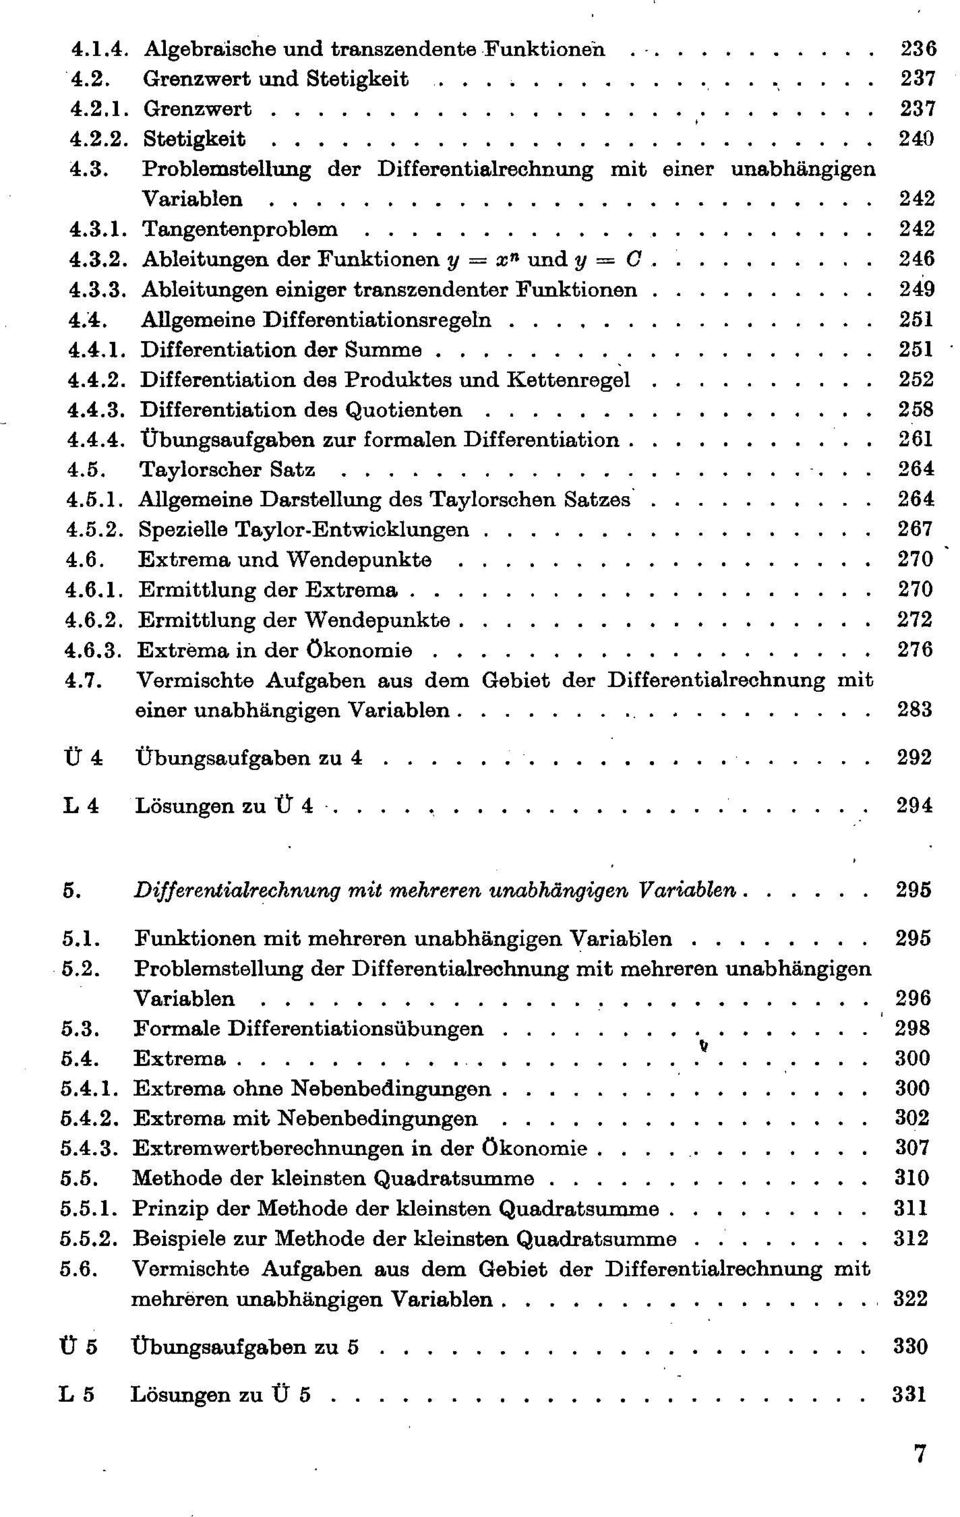 4.2. Differentiation des Produktes und Kettenregel 252 4.4.3. Differentiation des Quotienten 258 4.4.4. Übungsaufgaben zur formalen Differentiation 261